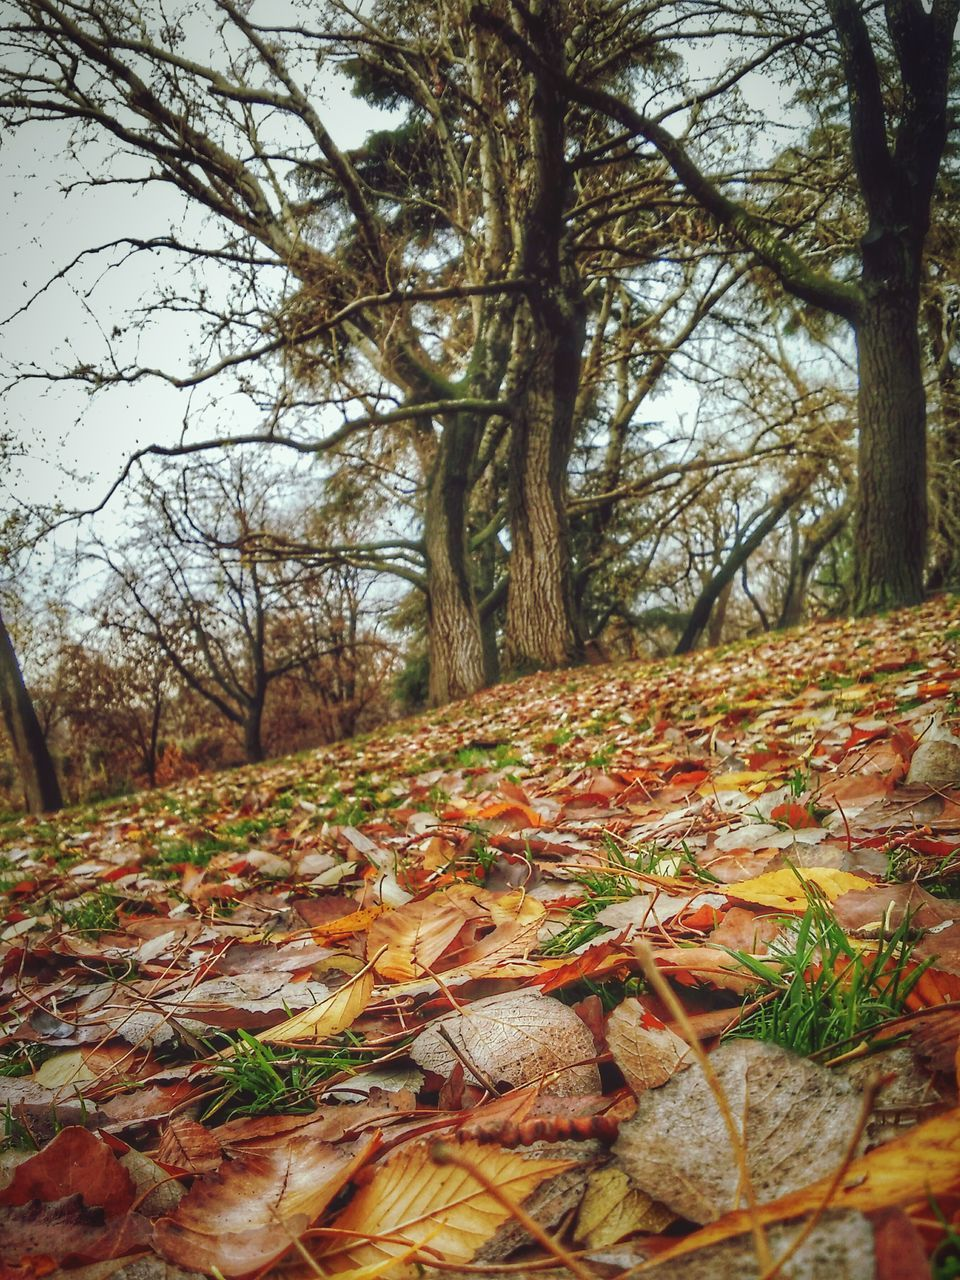 tree, autumn, nature, leaf, forest, tree trunk, change, tranquility, beauty in nature, scenics, branch, tranquil scene, no people, outdoors, growth, day, landscape, bare tree, sky